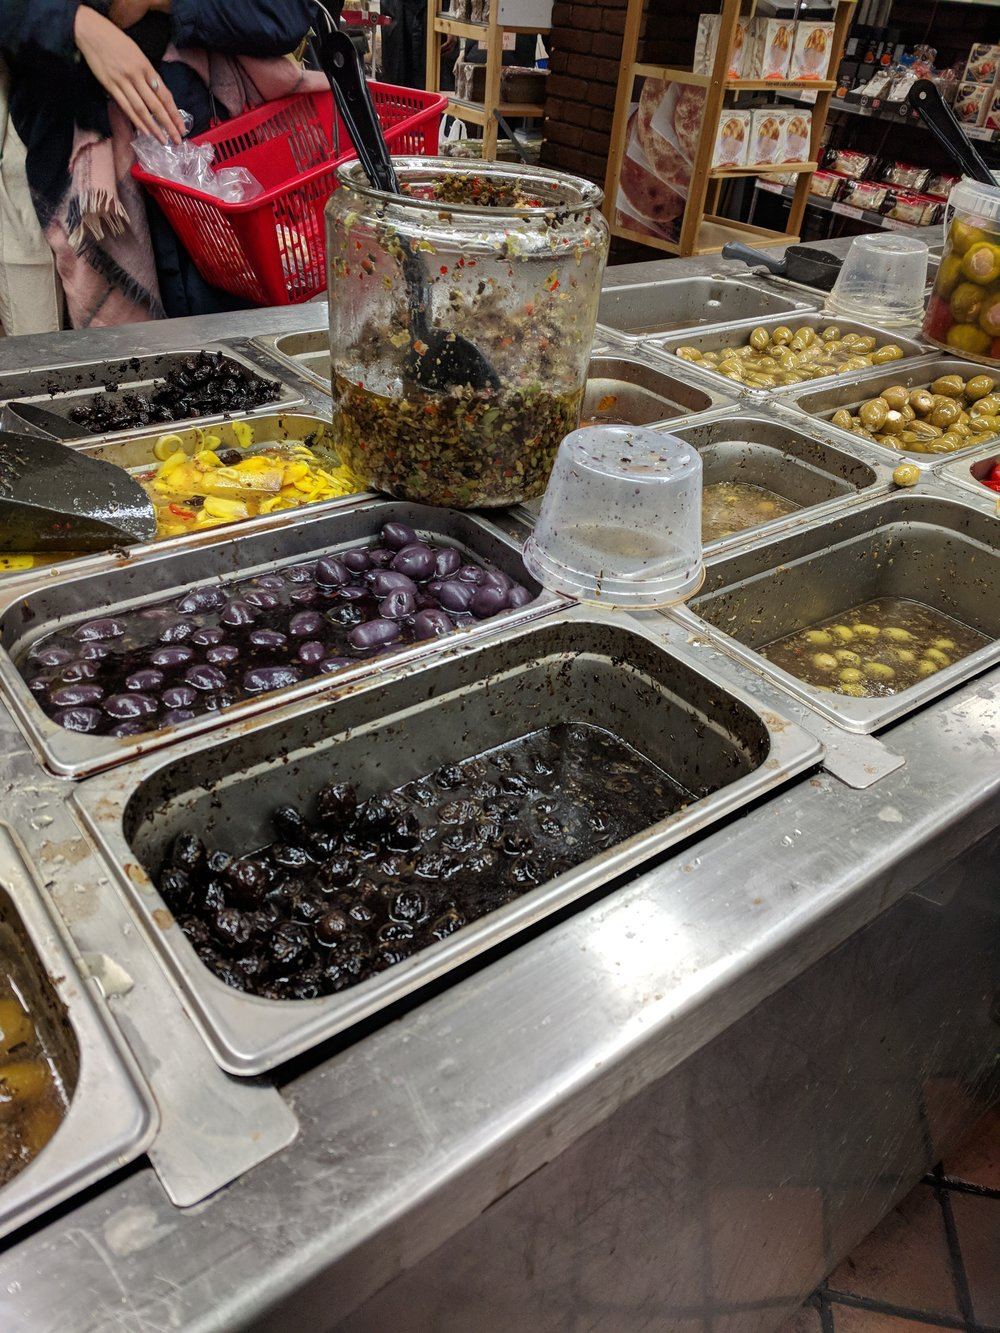 Olive bar, Sahadi's – a fave stop in downtown Brooklyn for spices